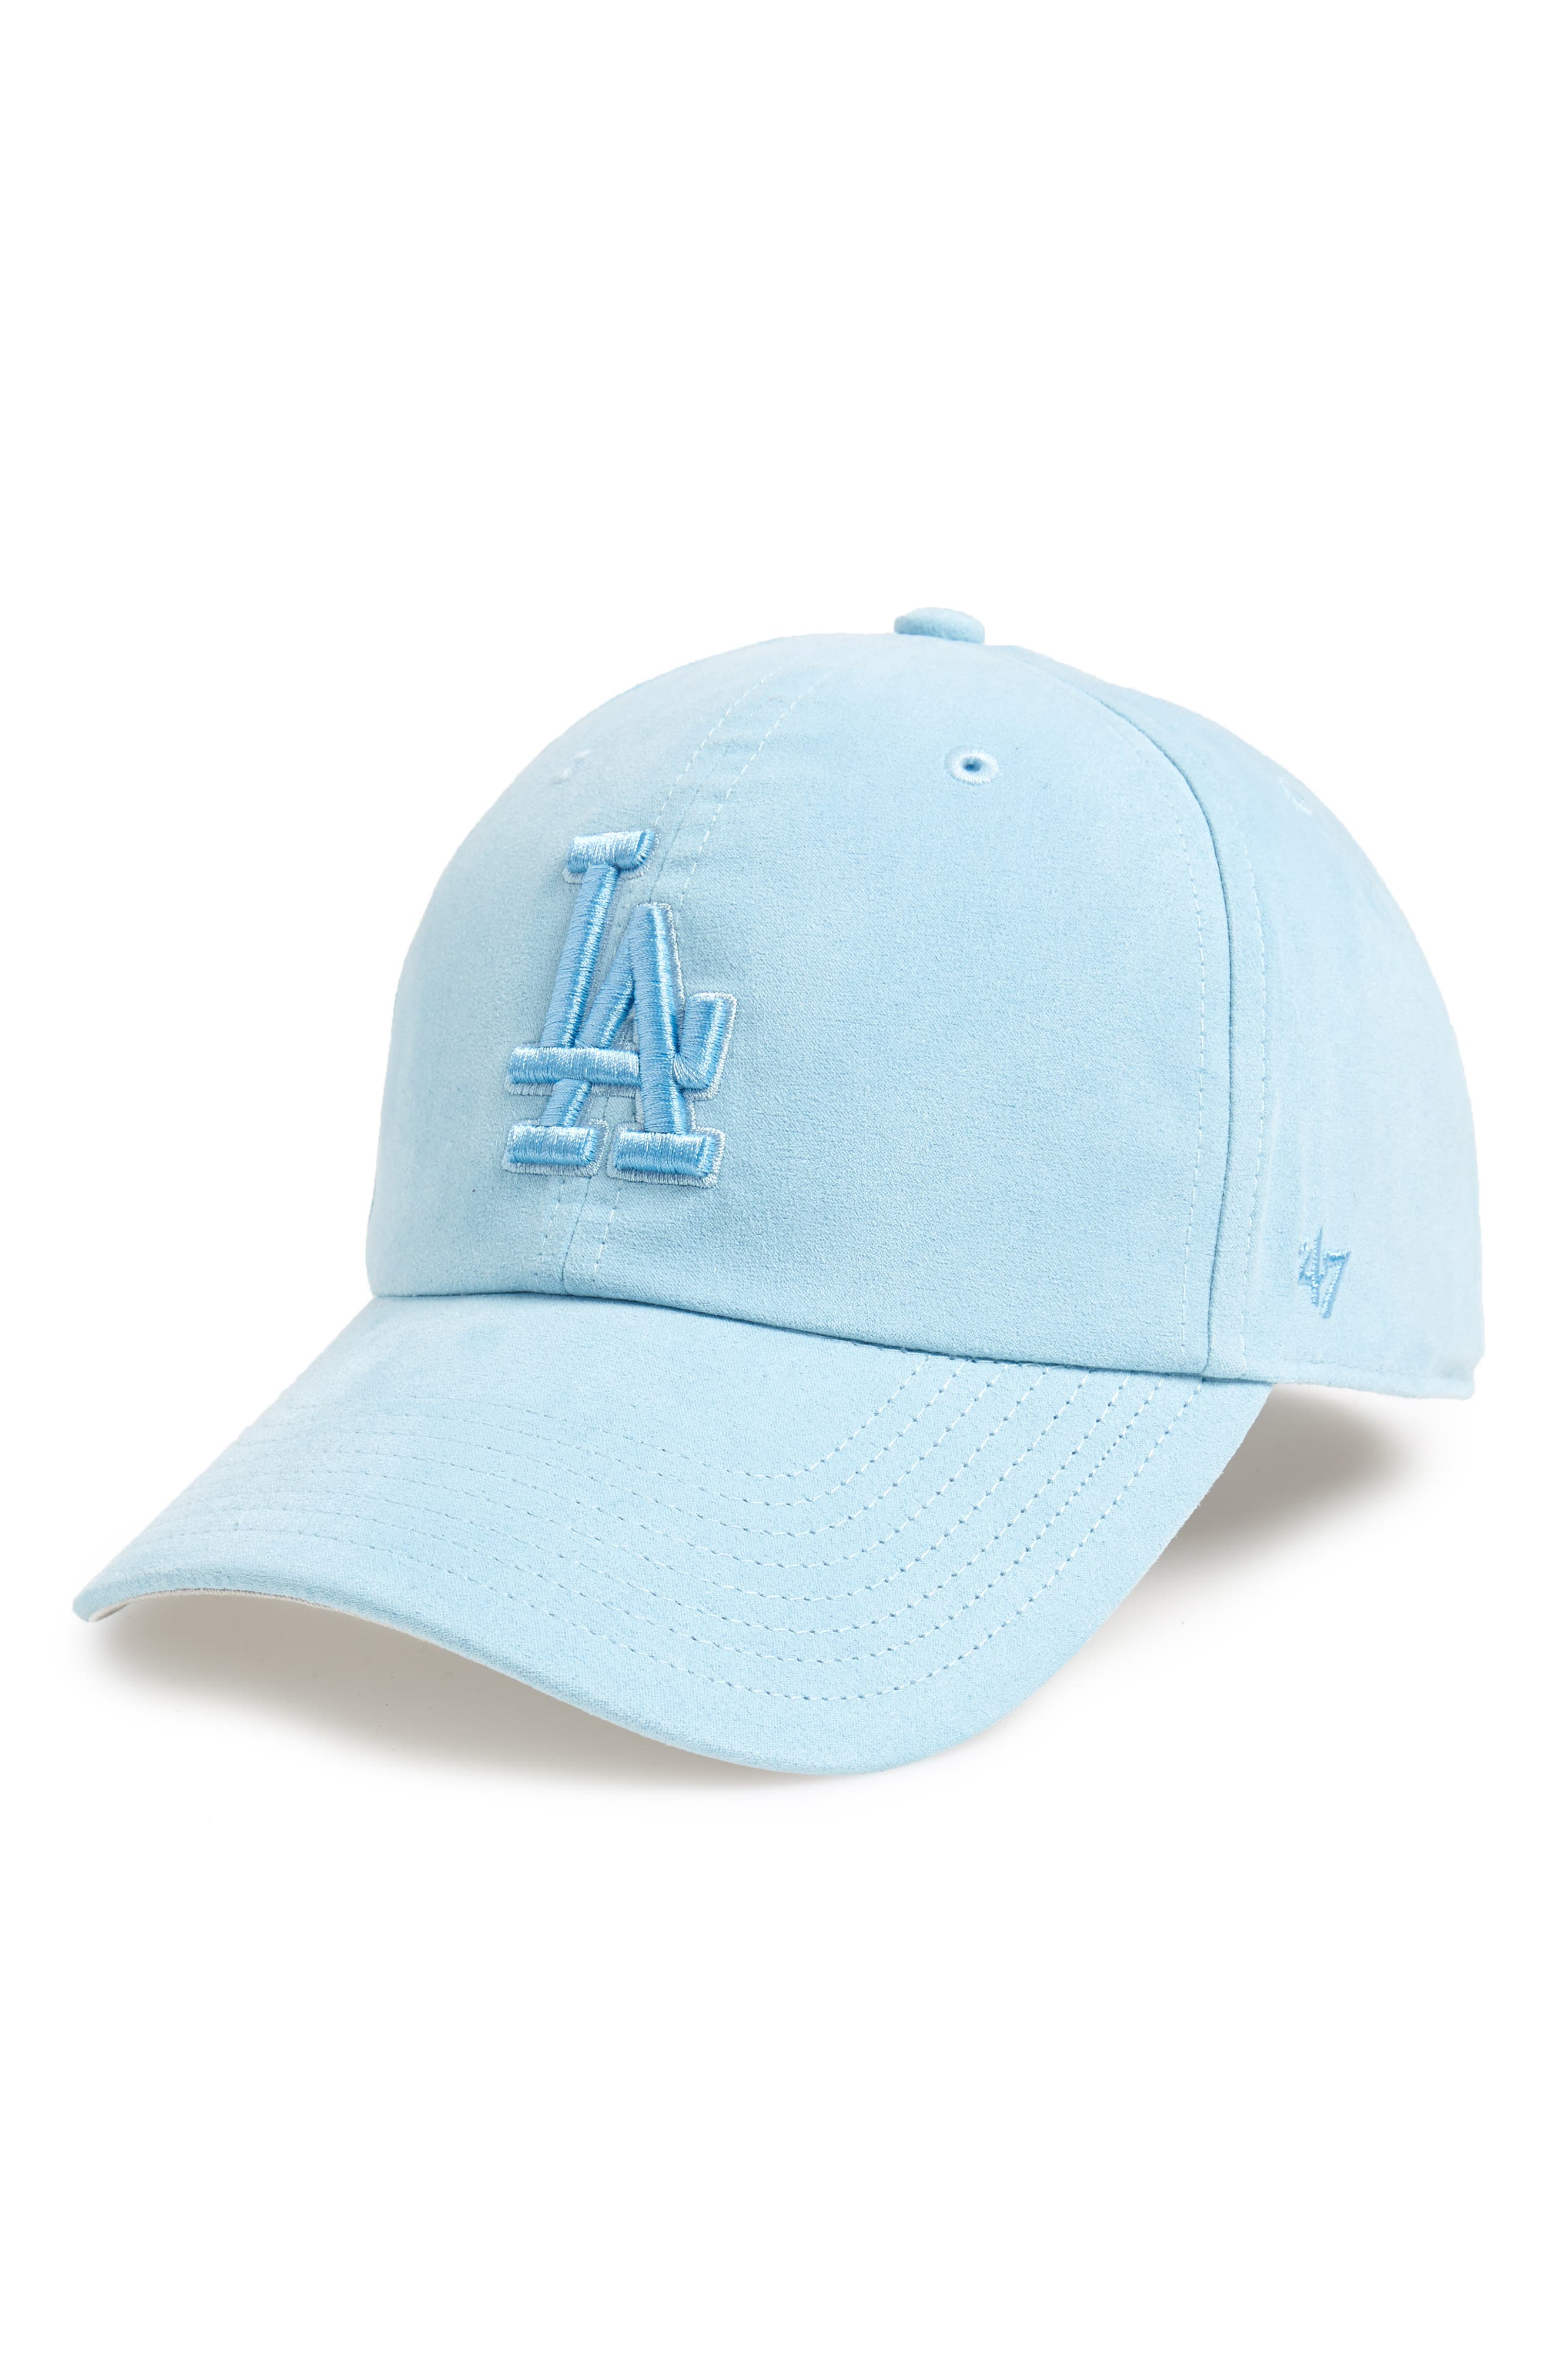 Ultrabasic Clean Up Los Angeles Dodgers Baseball Cap,                             Main thumbnail 1, color,                             LIGHT BLUE